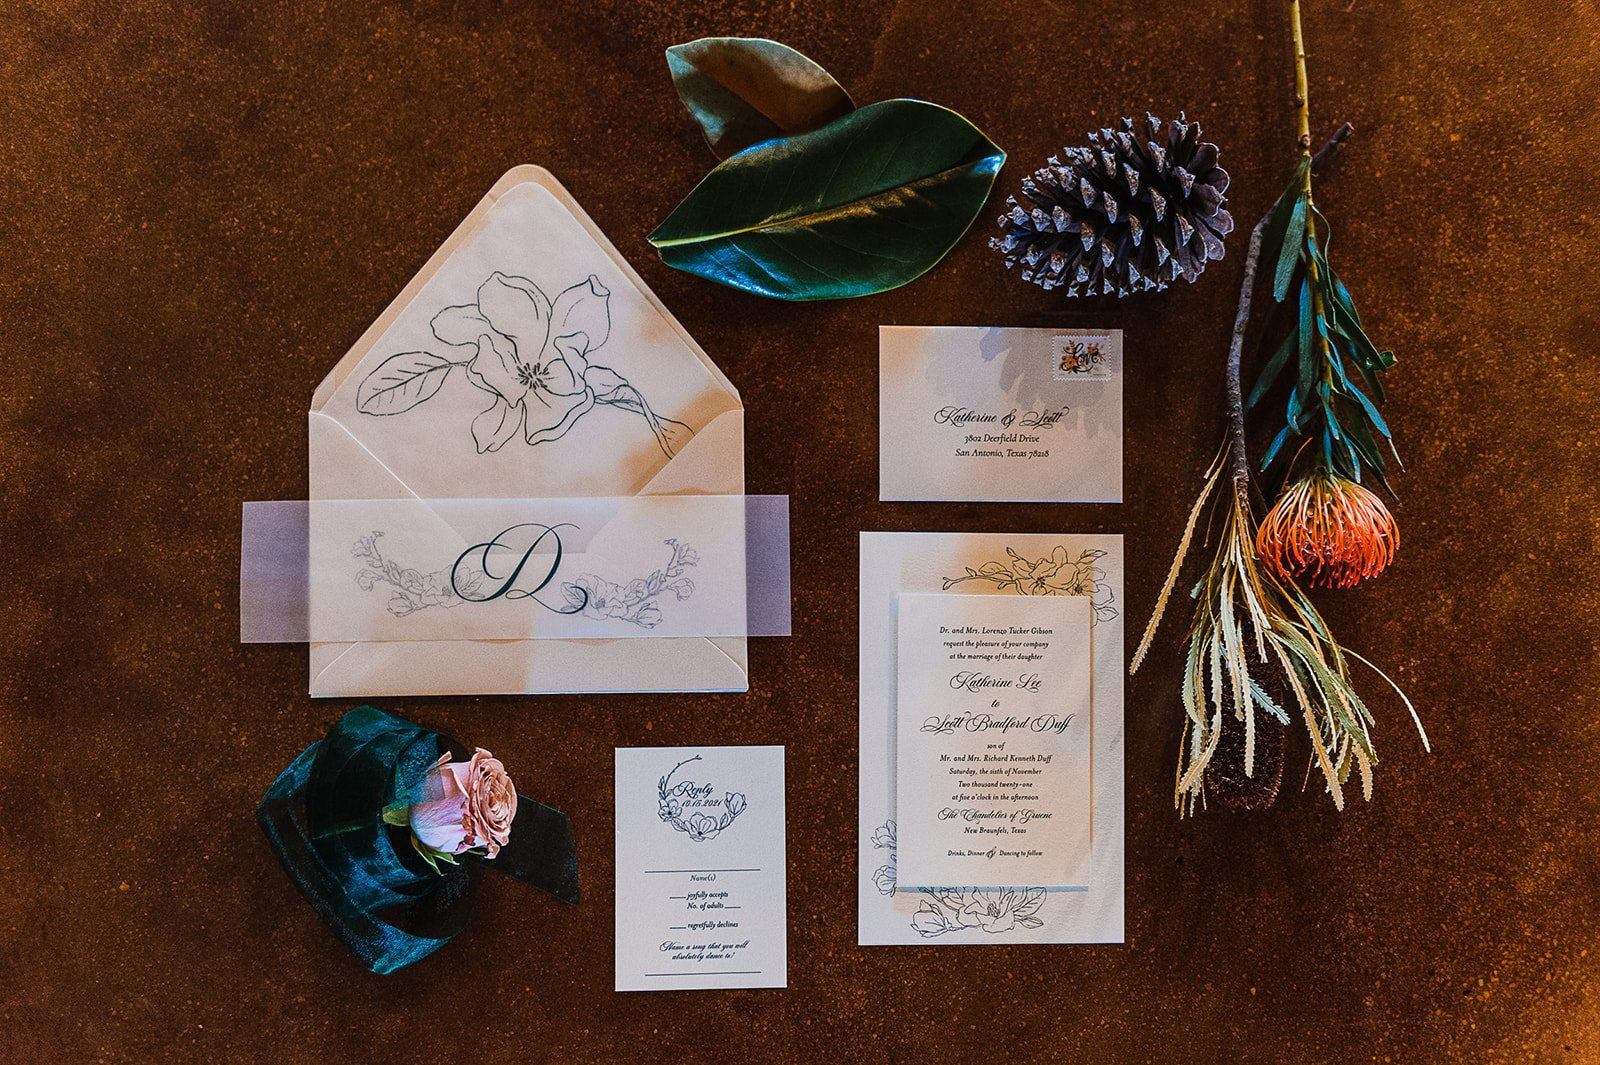 dark tone wedding stationary styled with leaves and pinecones